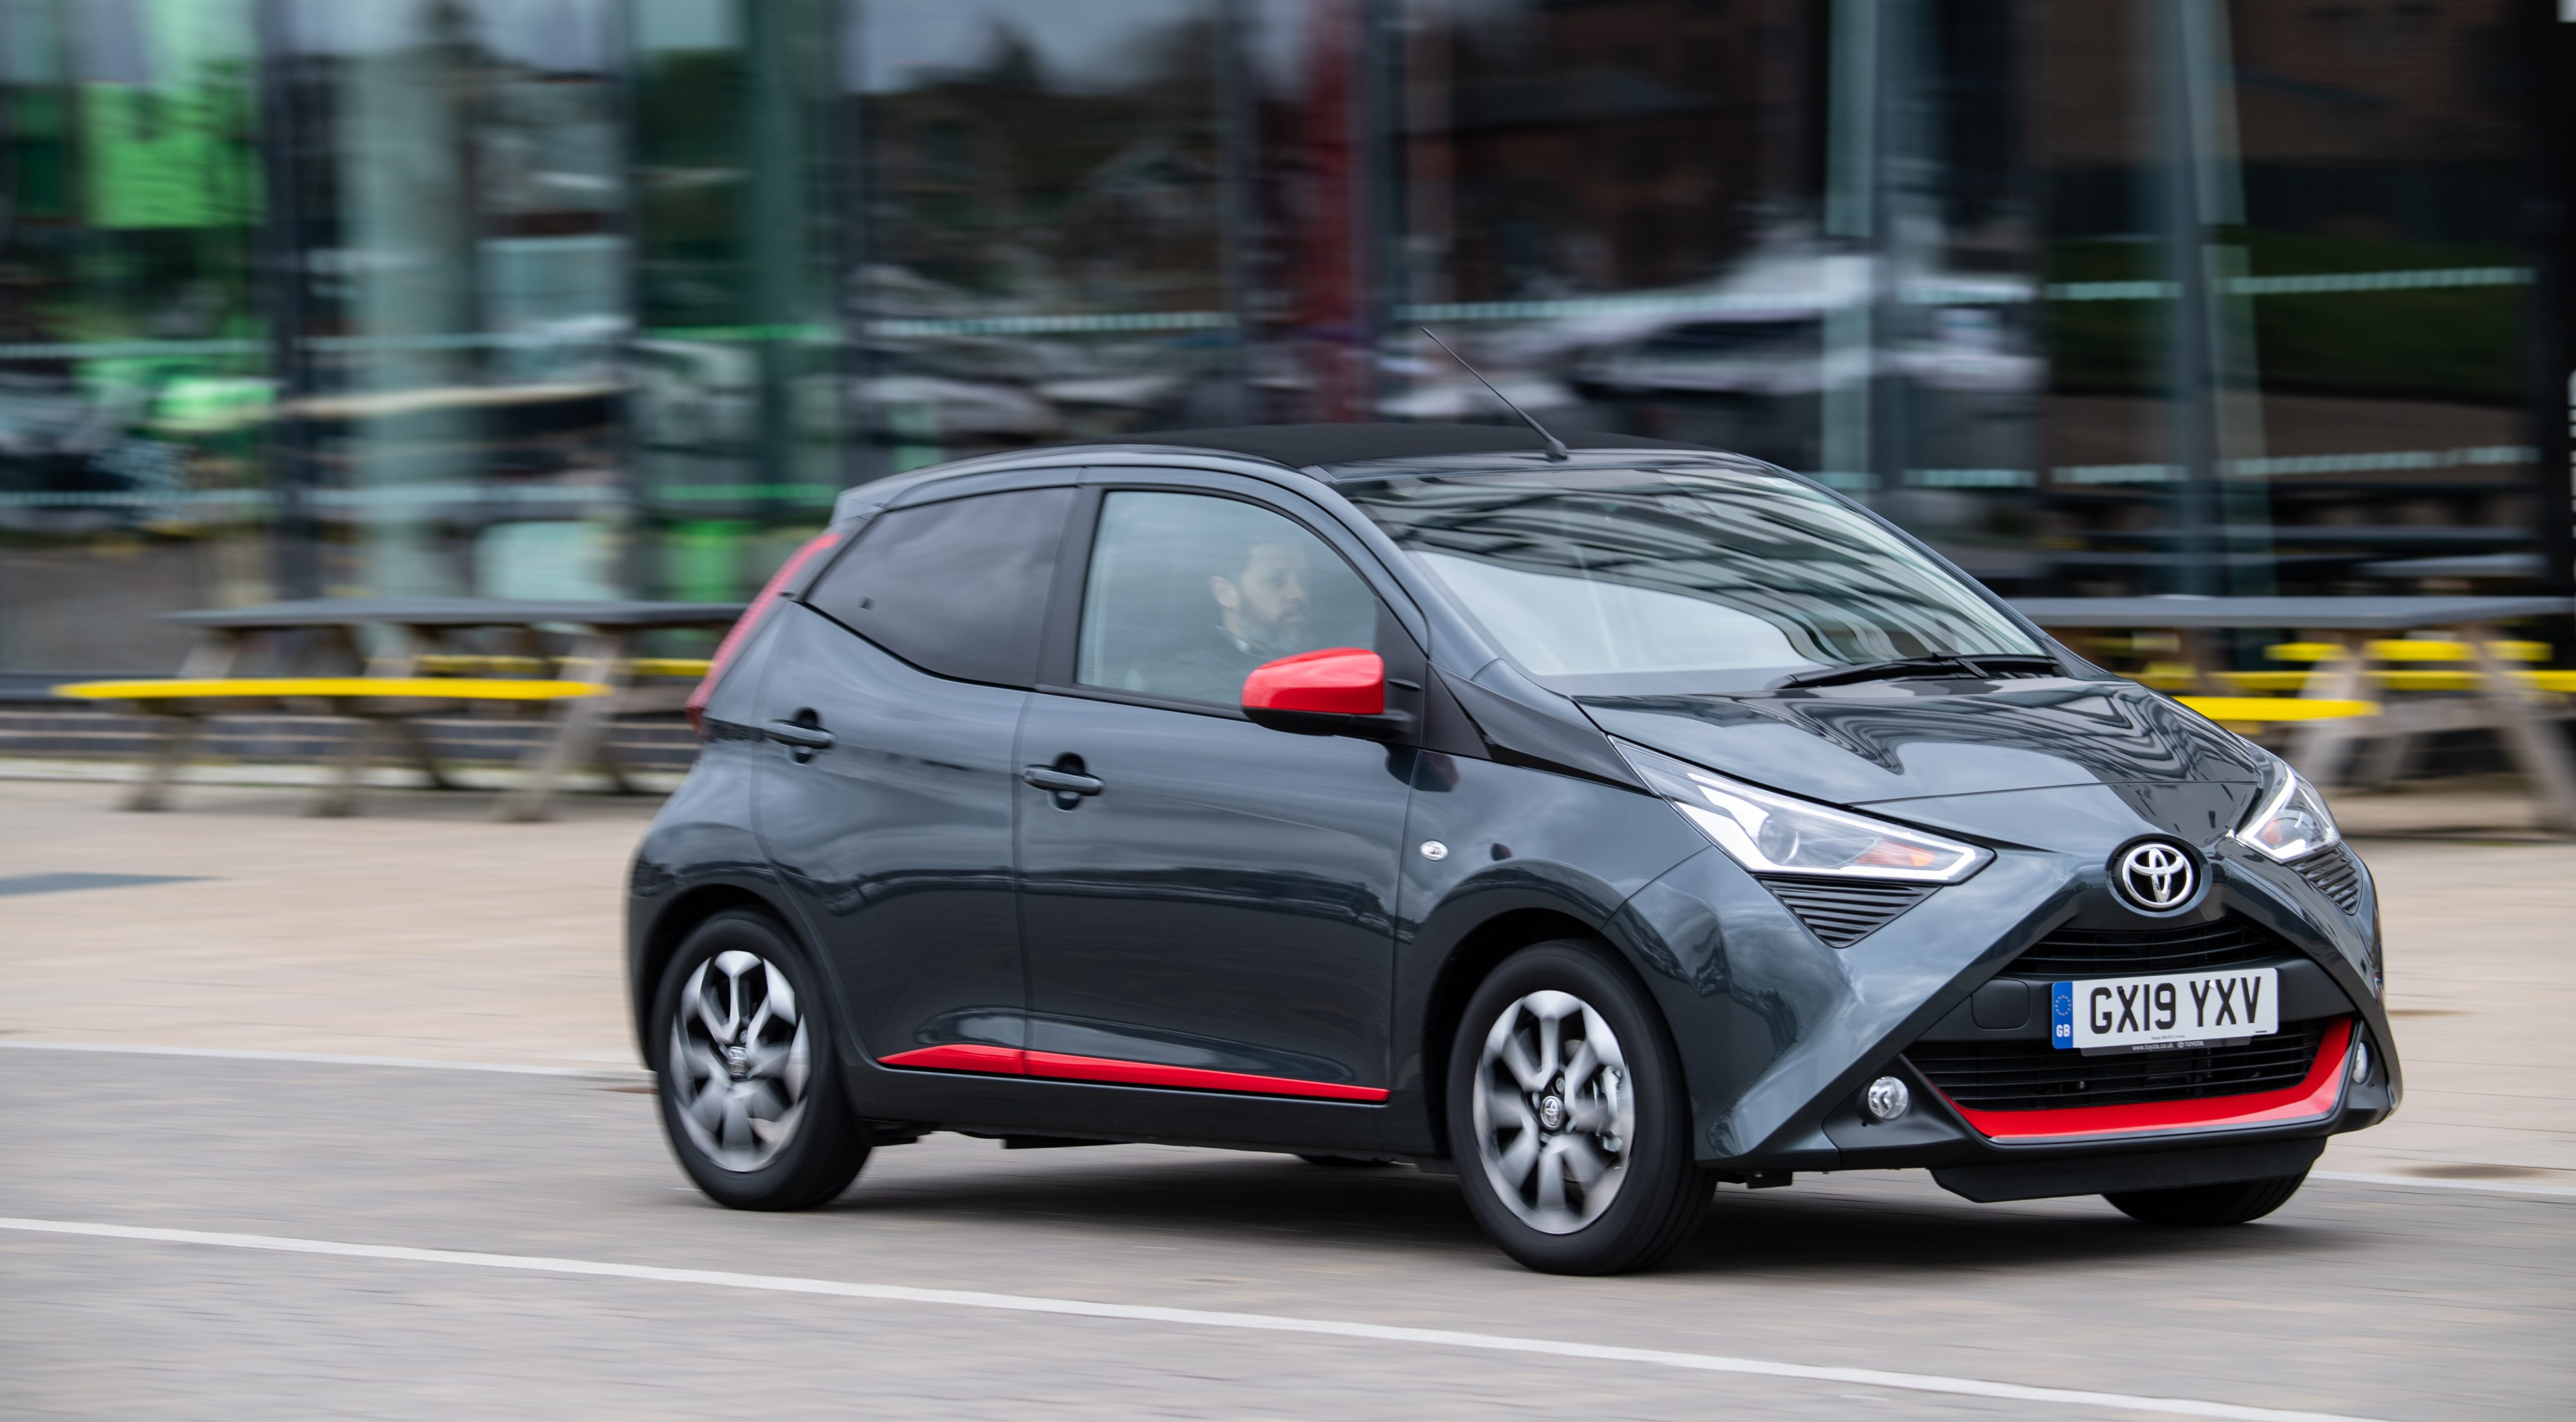 Toyota Aygo driving round a UK street